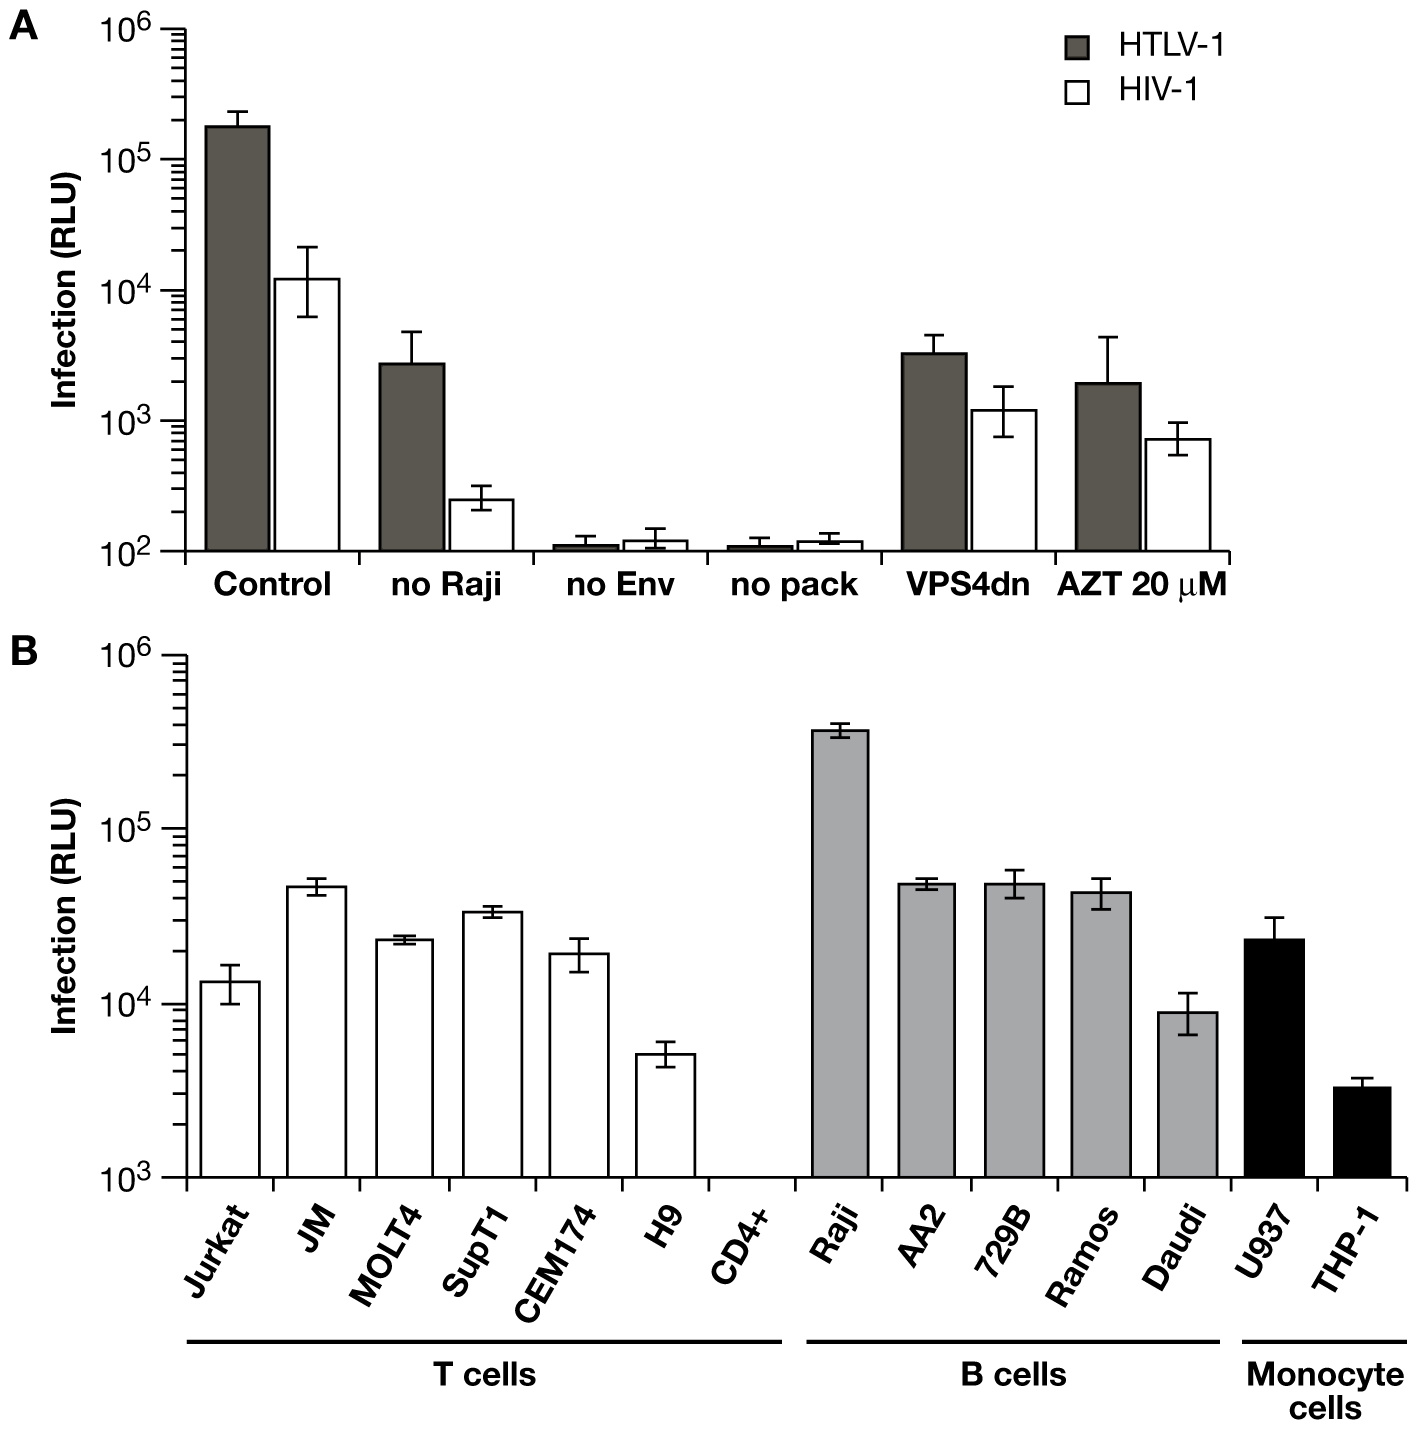 Characteristics of the replication dependent vectors in coculture infections.